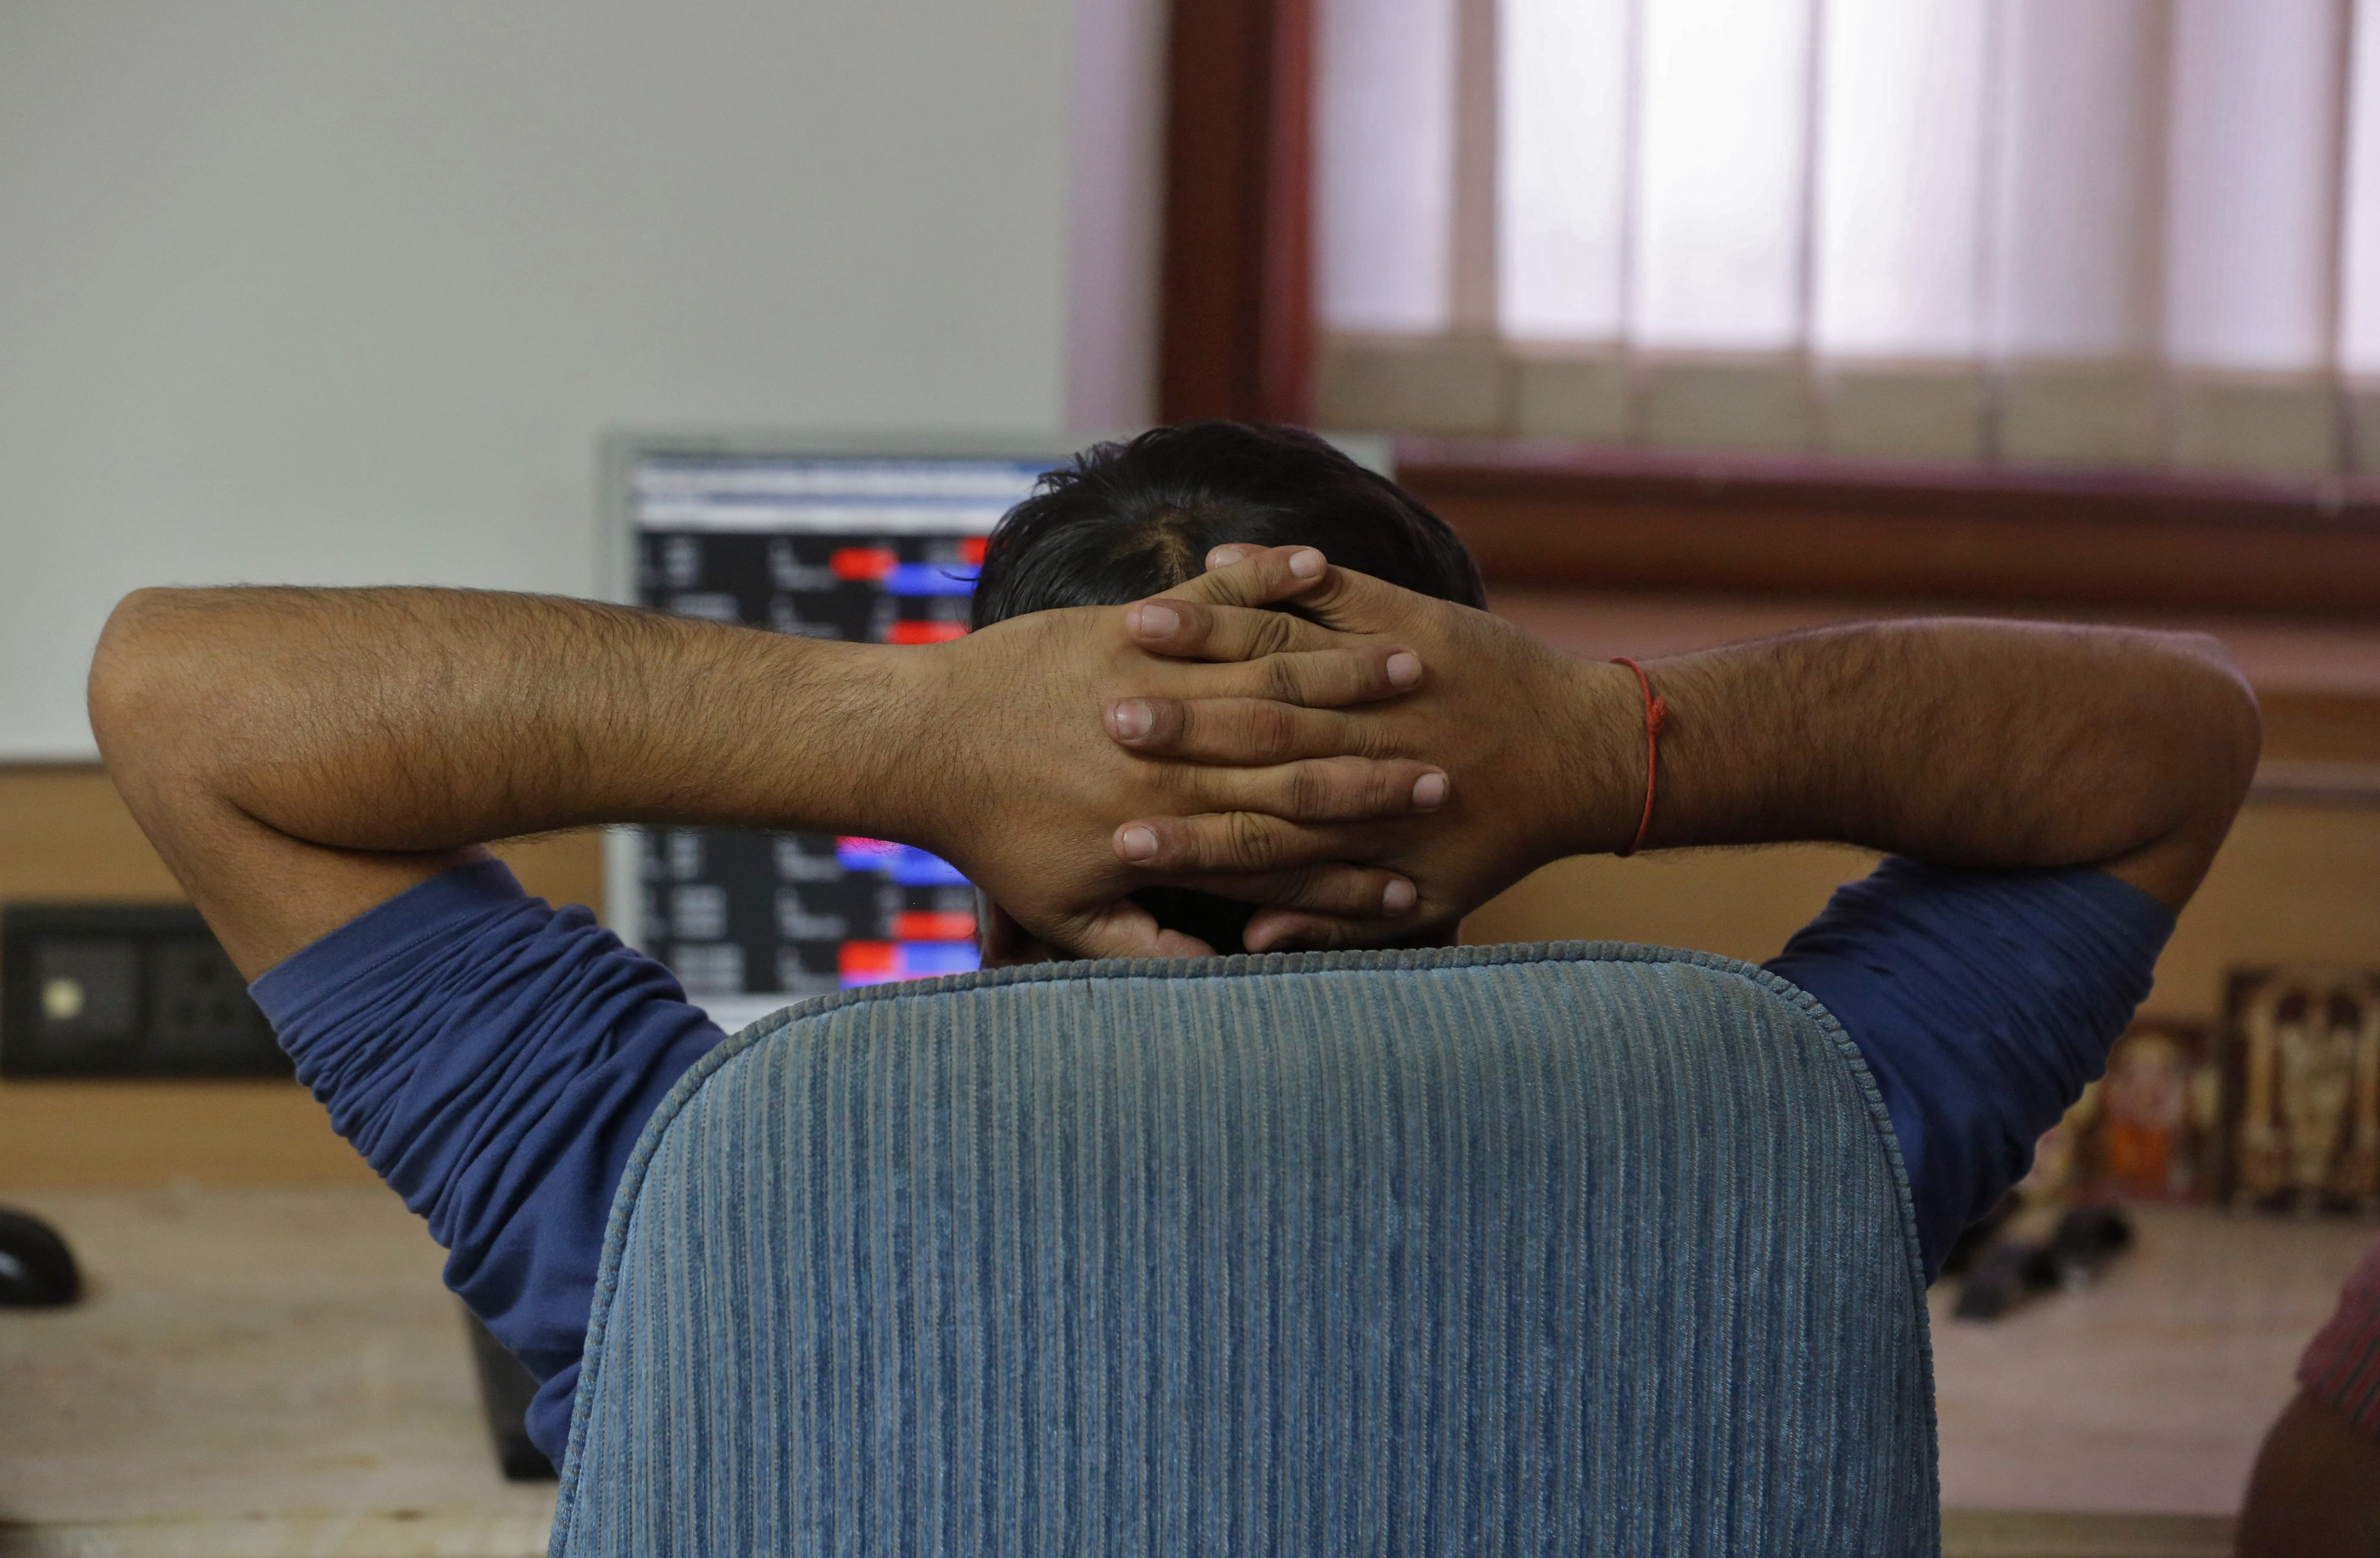 A broker reacts while trading at his computer terminal at a stock brokerage firm in Mumbai, India, February 26, 2016. Indian bonds, shares and the rupee gained on Friday after a key government report on the economy was seen as calling for fiscal prudence and stable inflation, while also acknowledging risks to the growth outlook.  REUTERS/Shailesh Andrade - RTX28O4U